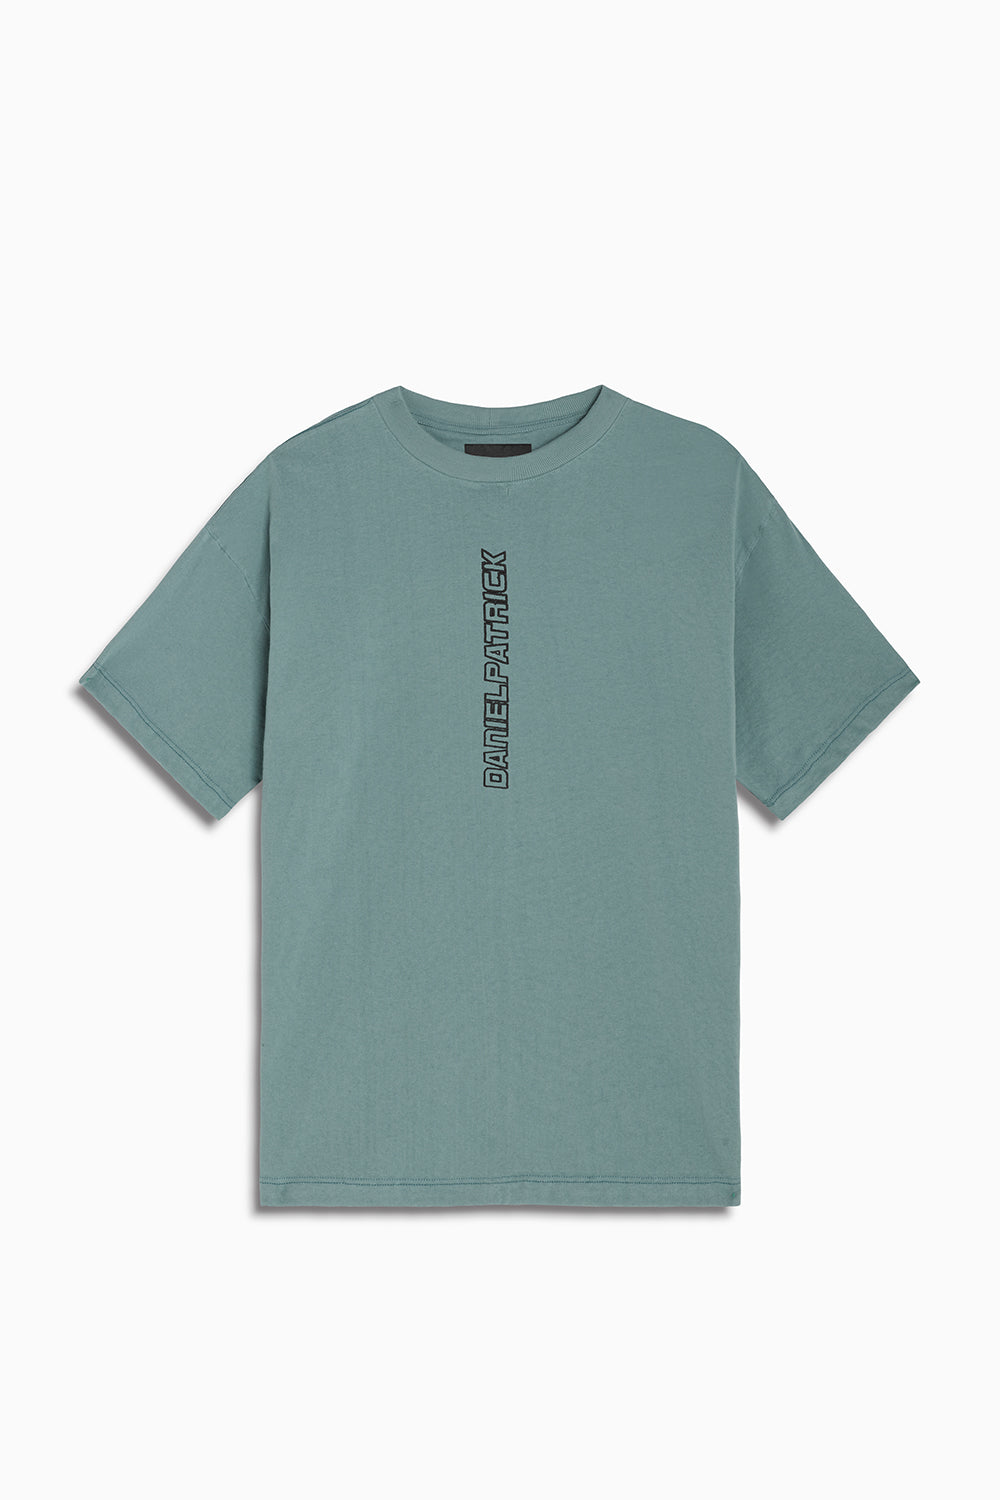 vertical logo tee in sea foam/black by daniel patrick